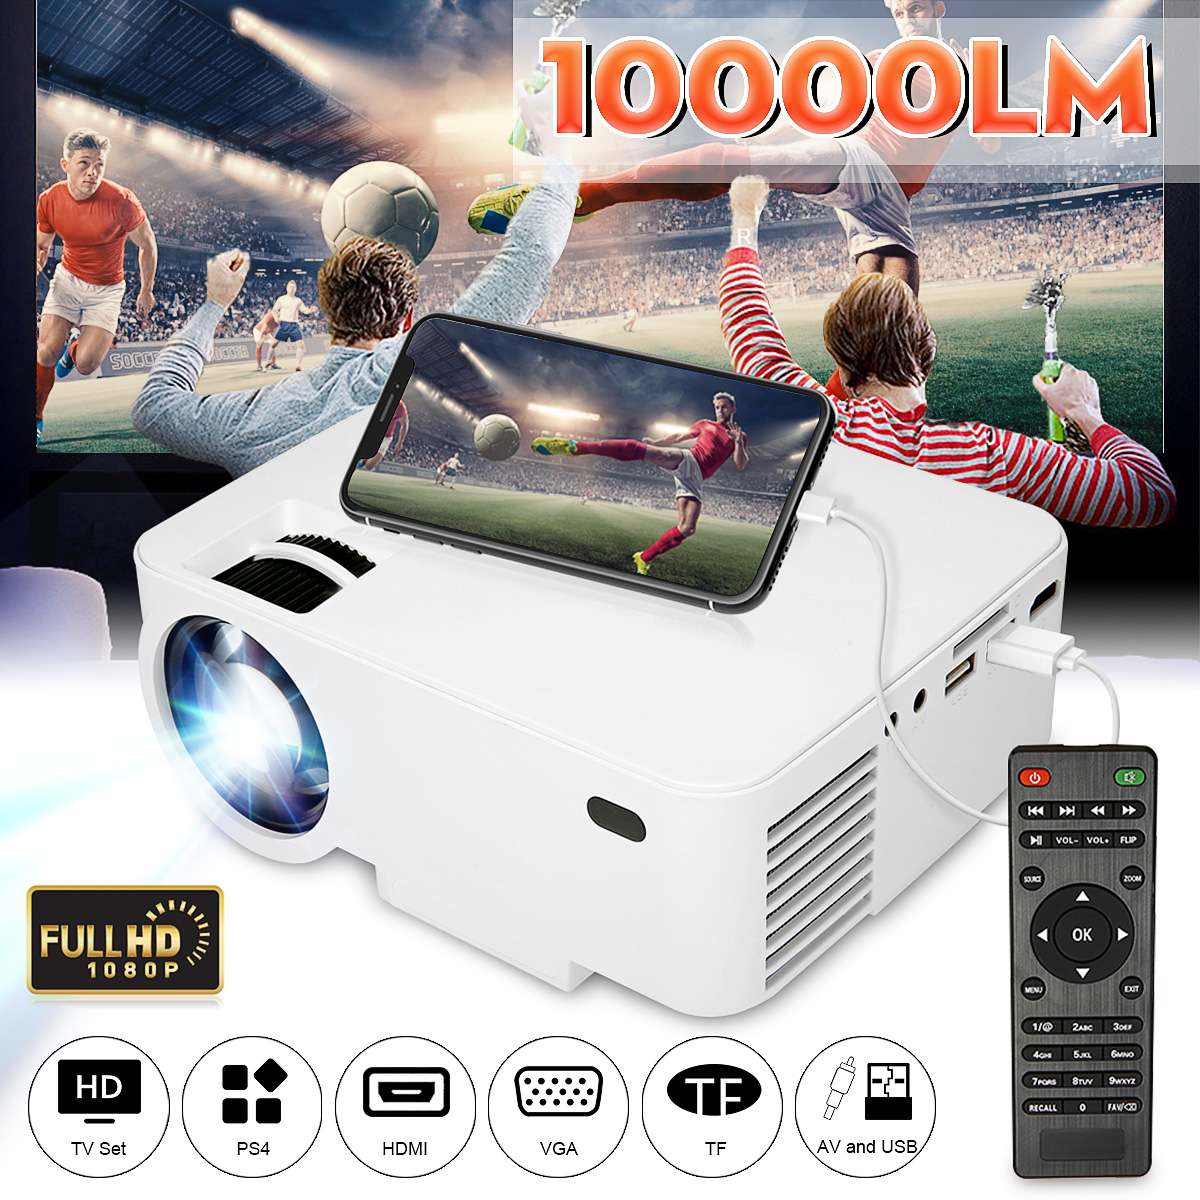 10000LM WIFI Projector 1080p HD Portable LCD Wireless Mini Video Projector for Home Cinema For iPhone/Android Phone + Remorte